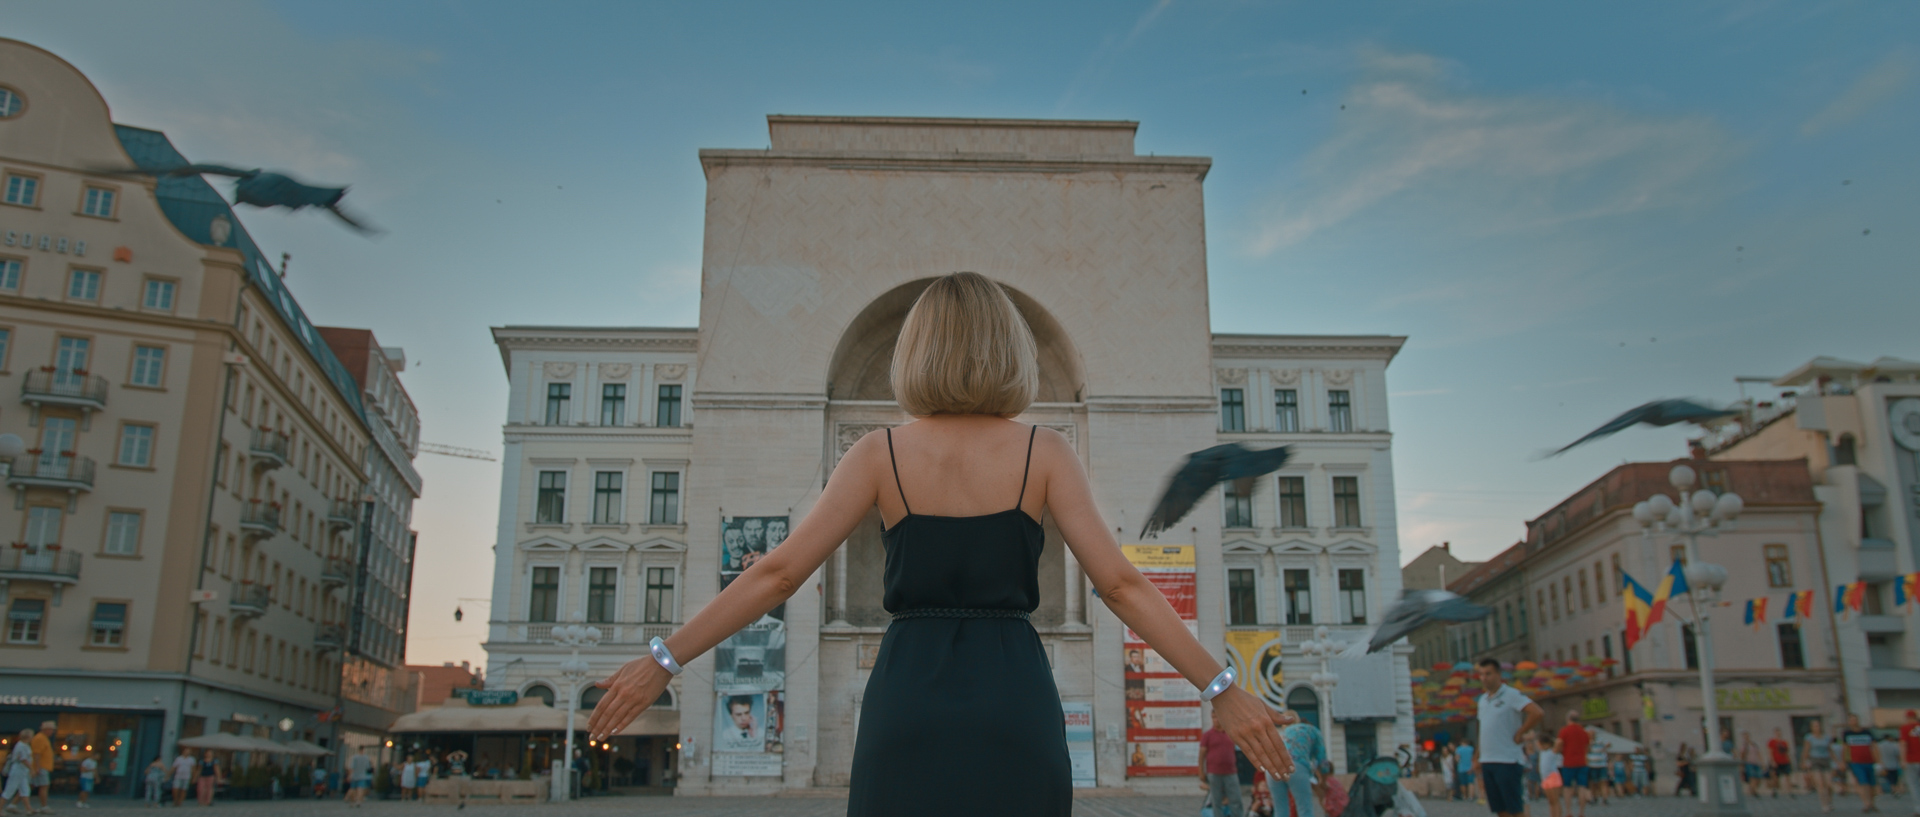 iulius town timisoara guinness world records commercial by popotam productions video agency after color grading